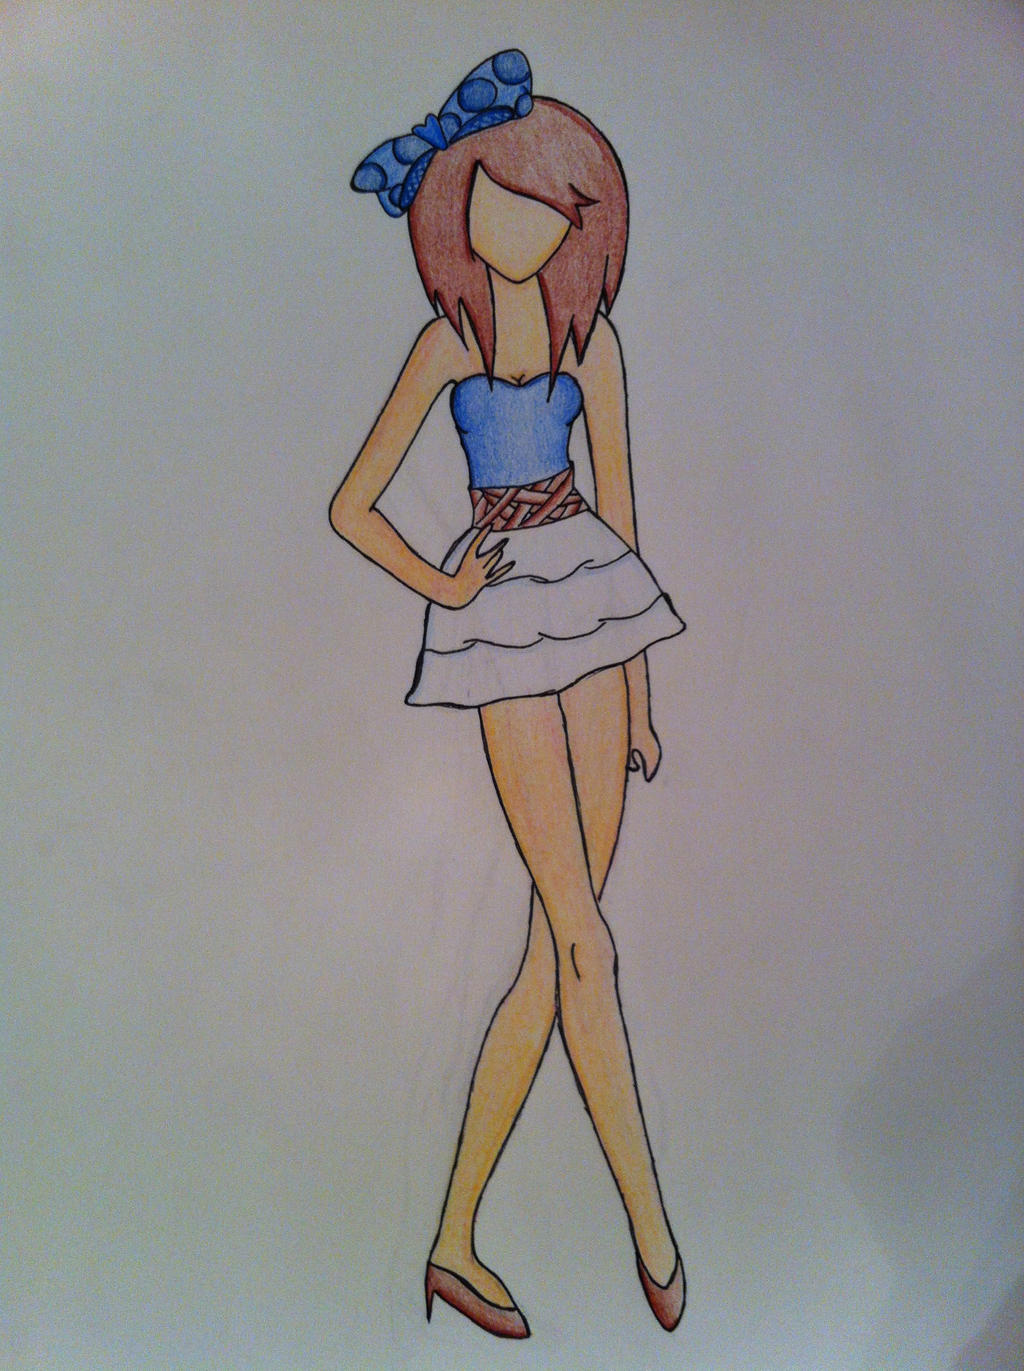 Cute fashion design by Jessie202